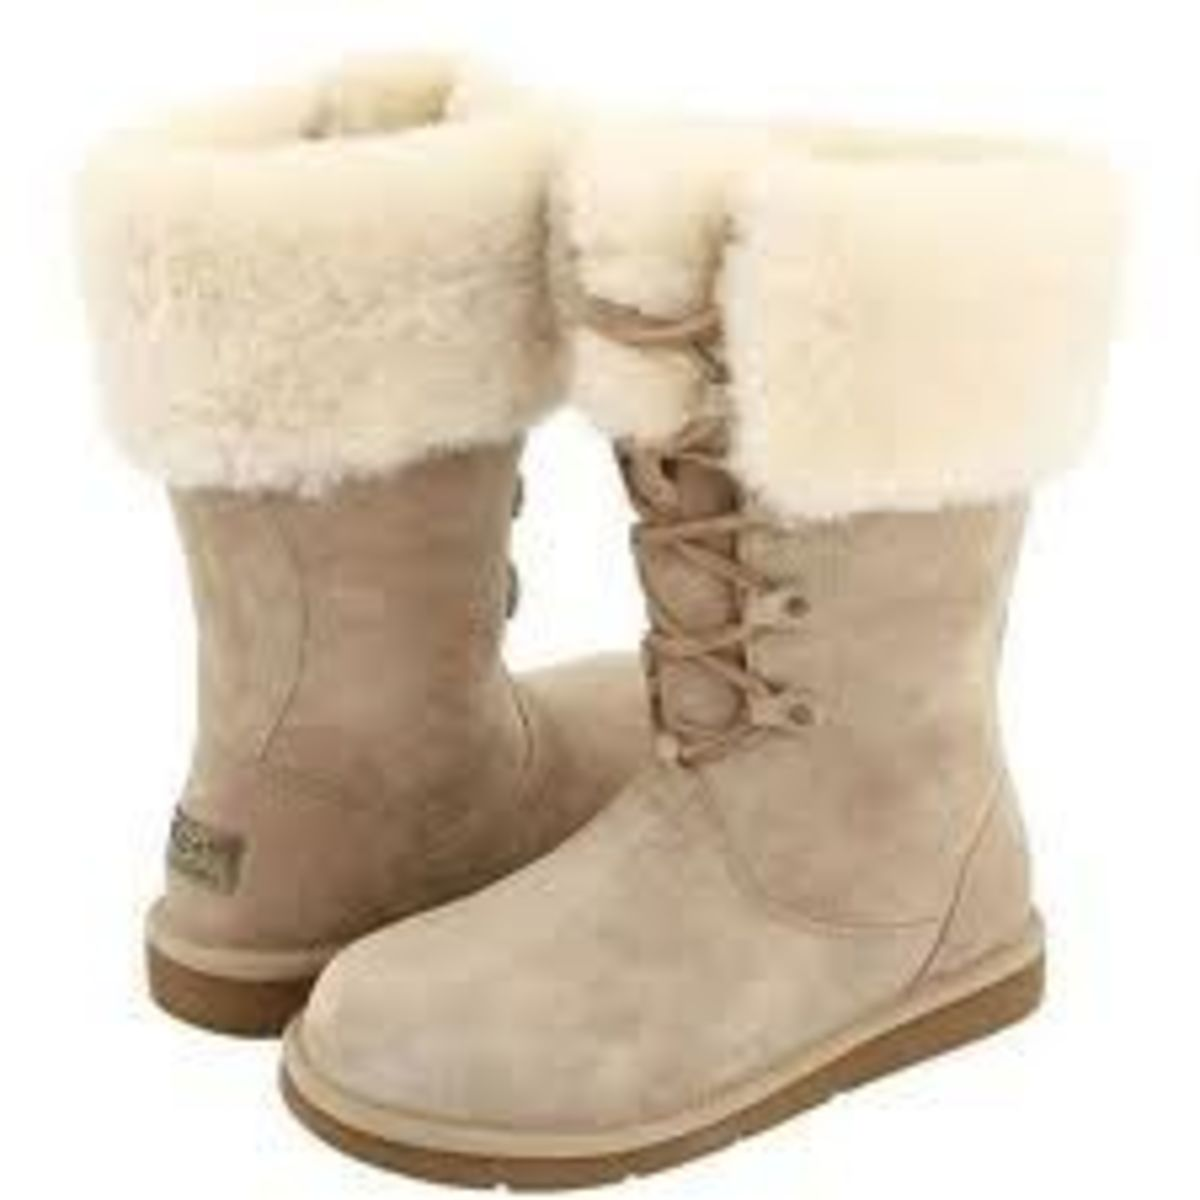 4dab2ea4332 How to Clean Uggs Without Ruining Them | HubPages